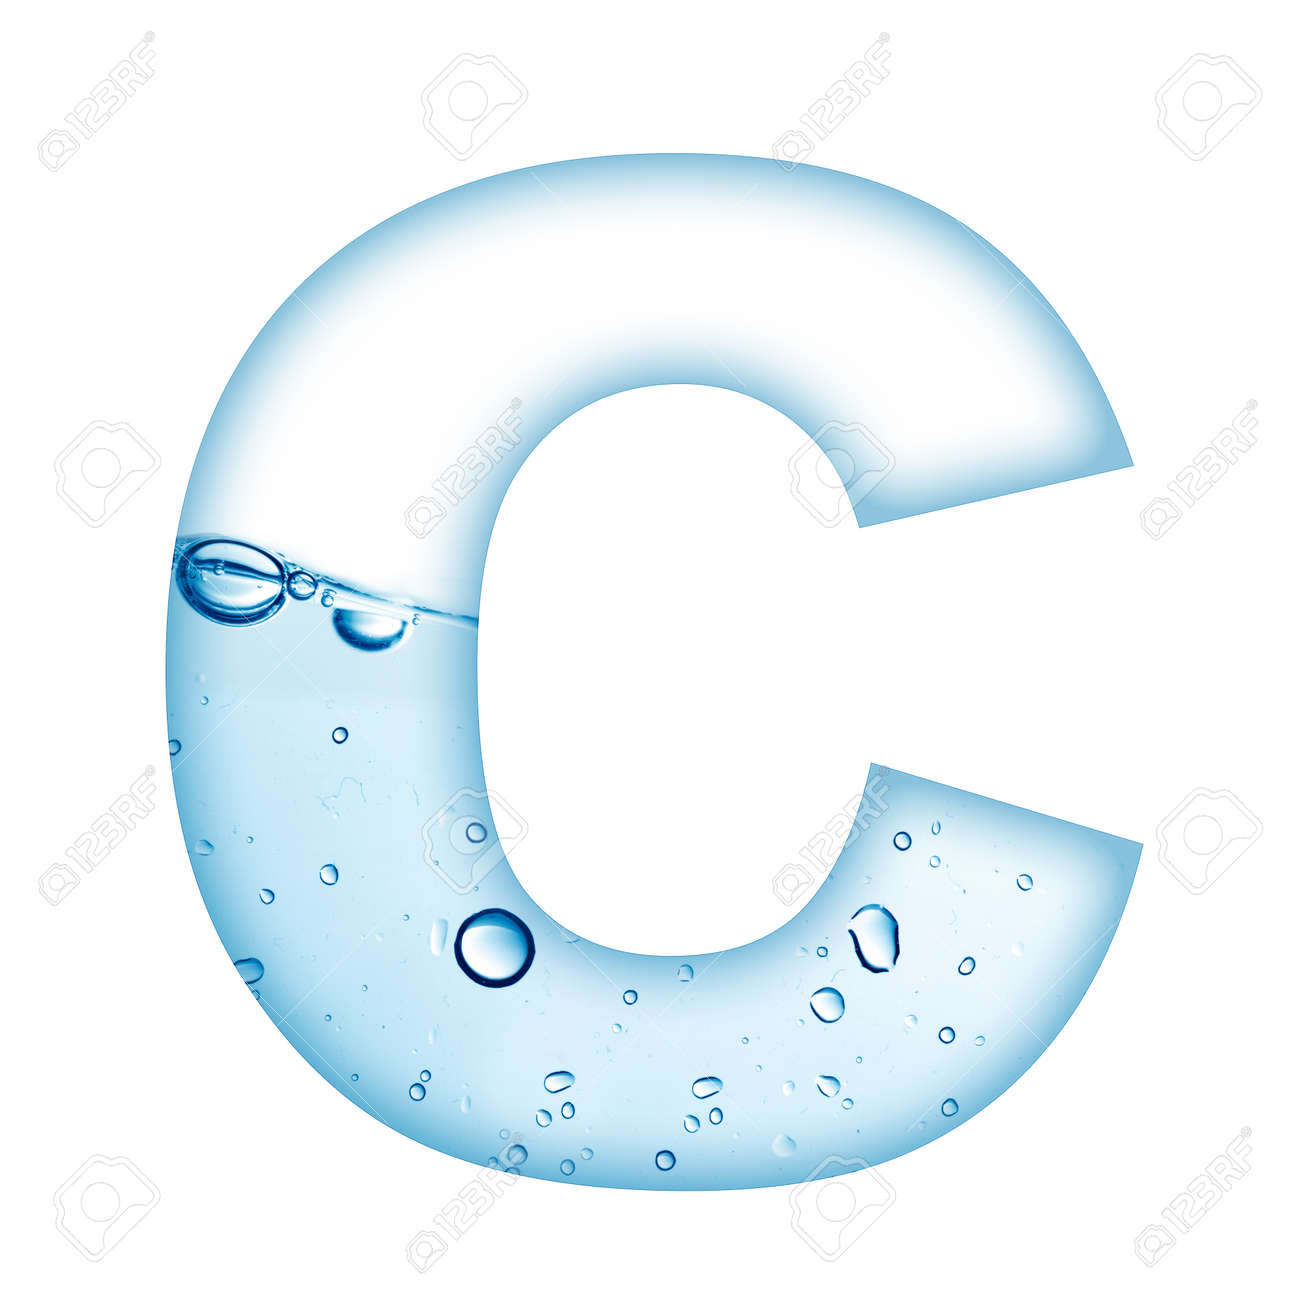 Alphabet letter made from water and bubble letter c stock photo alphabet letter made from water and bubble letter c stock photo 12936497 altavistaventures Images